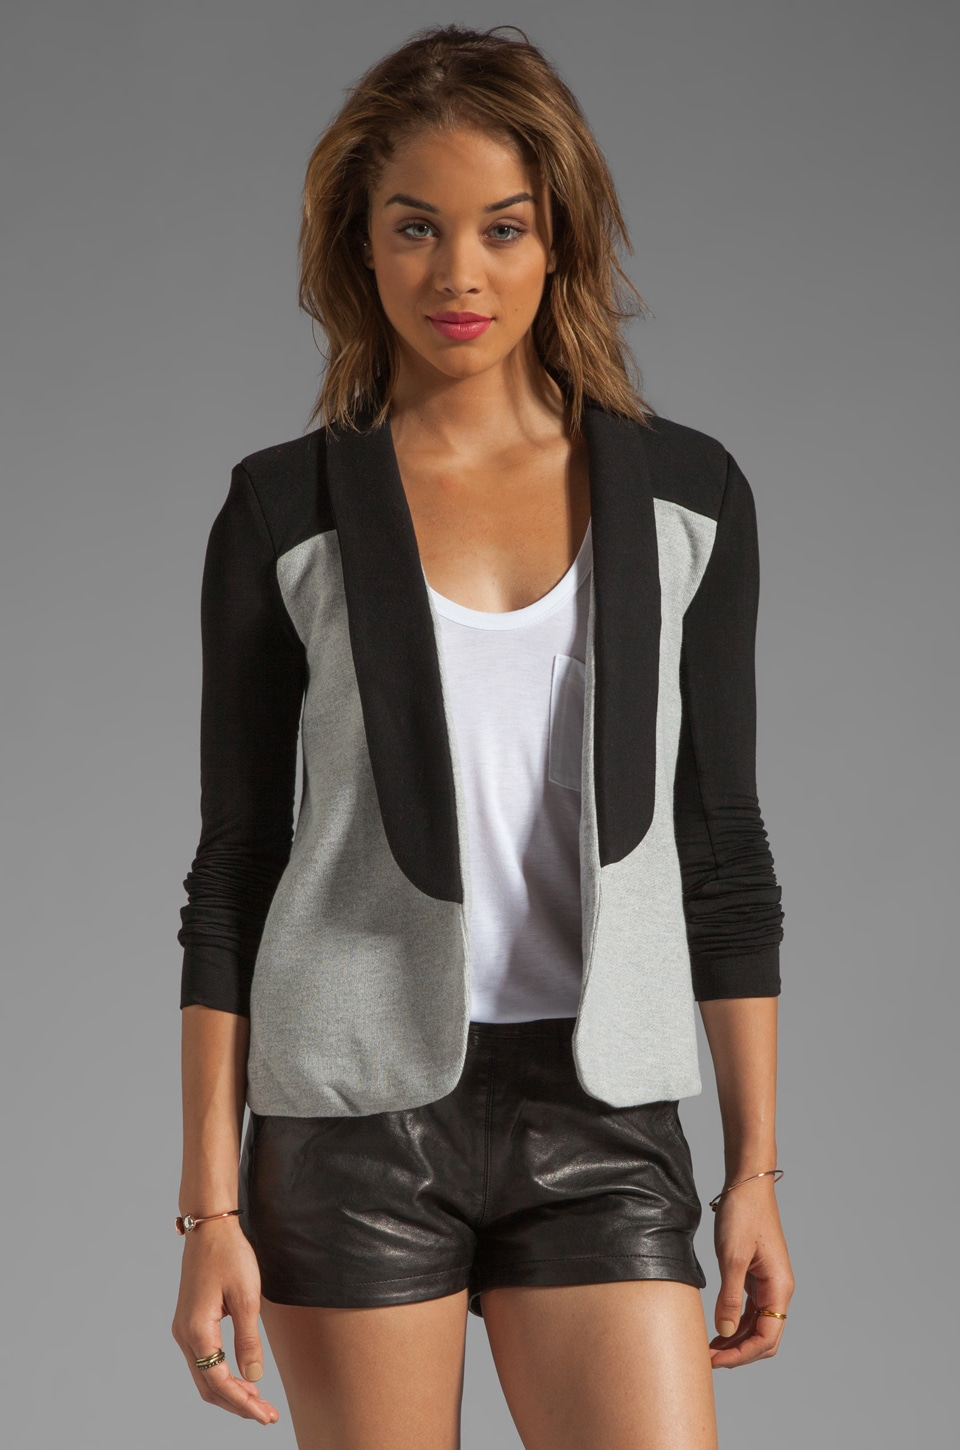 Pencey Standard Warrior Blazer in Black/Grey